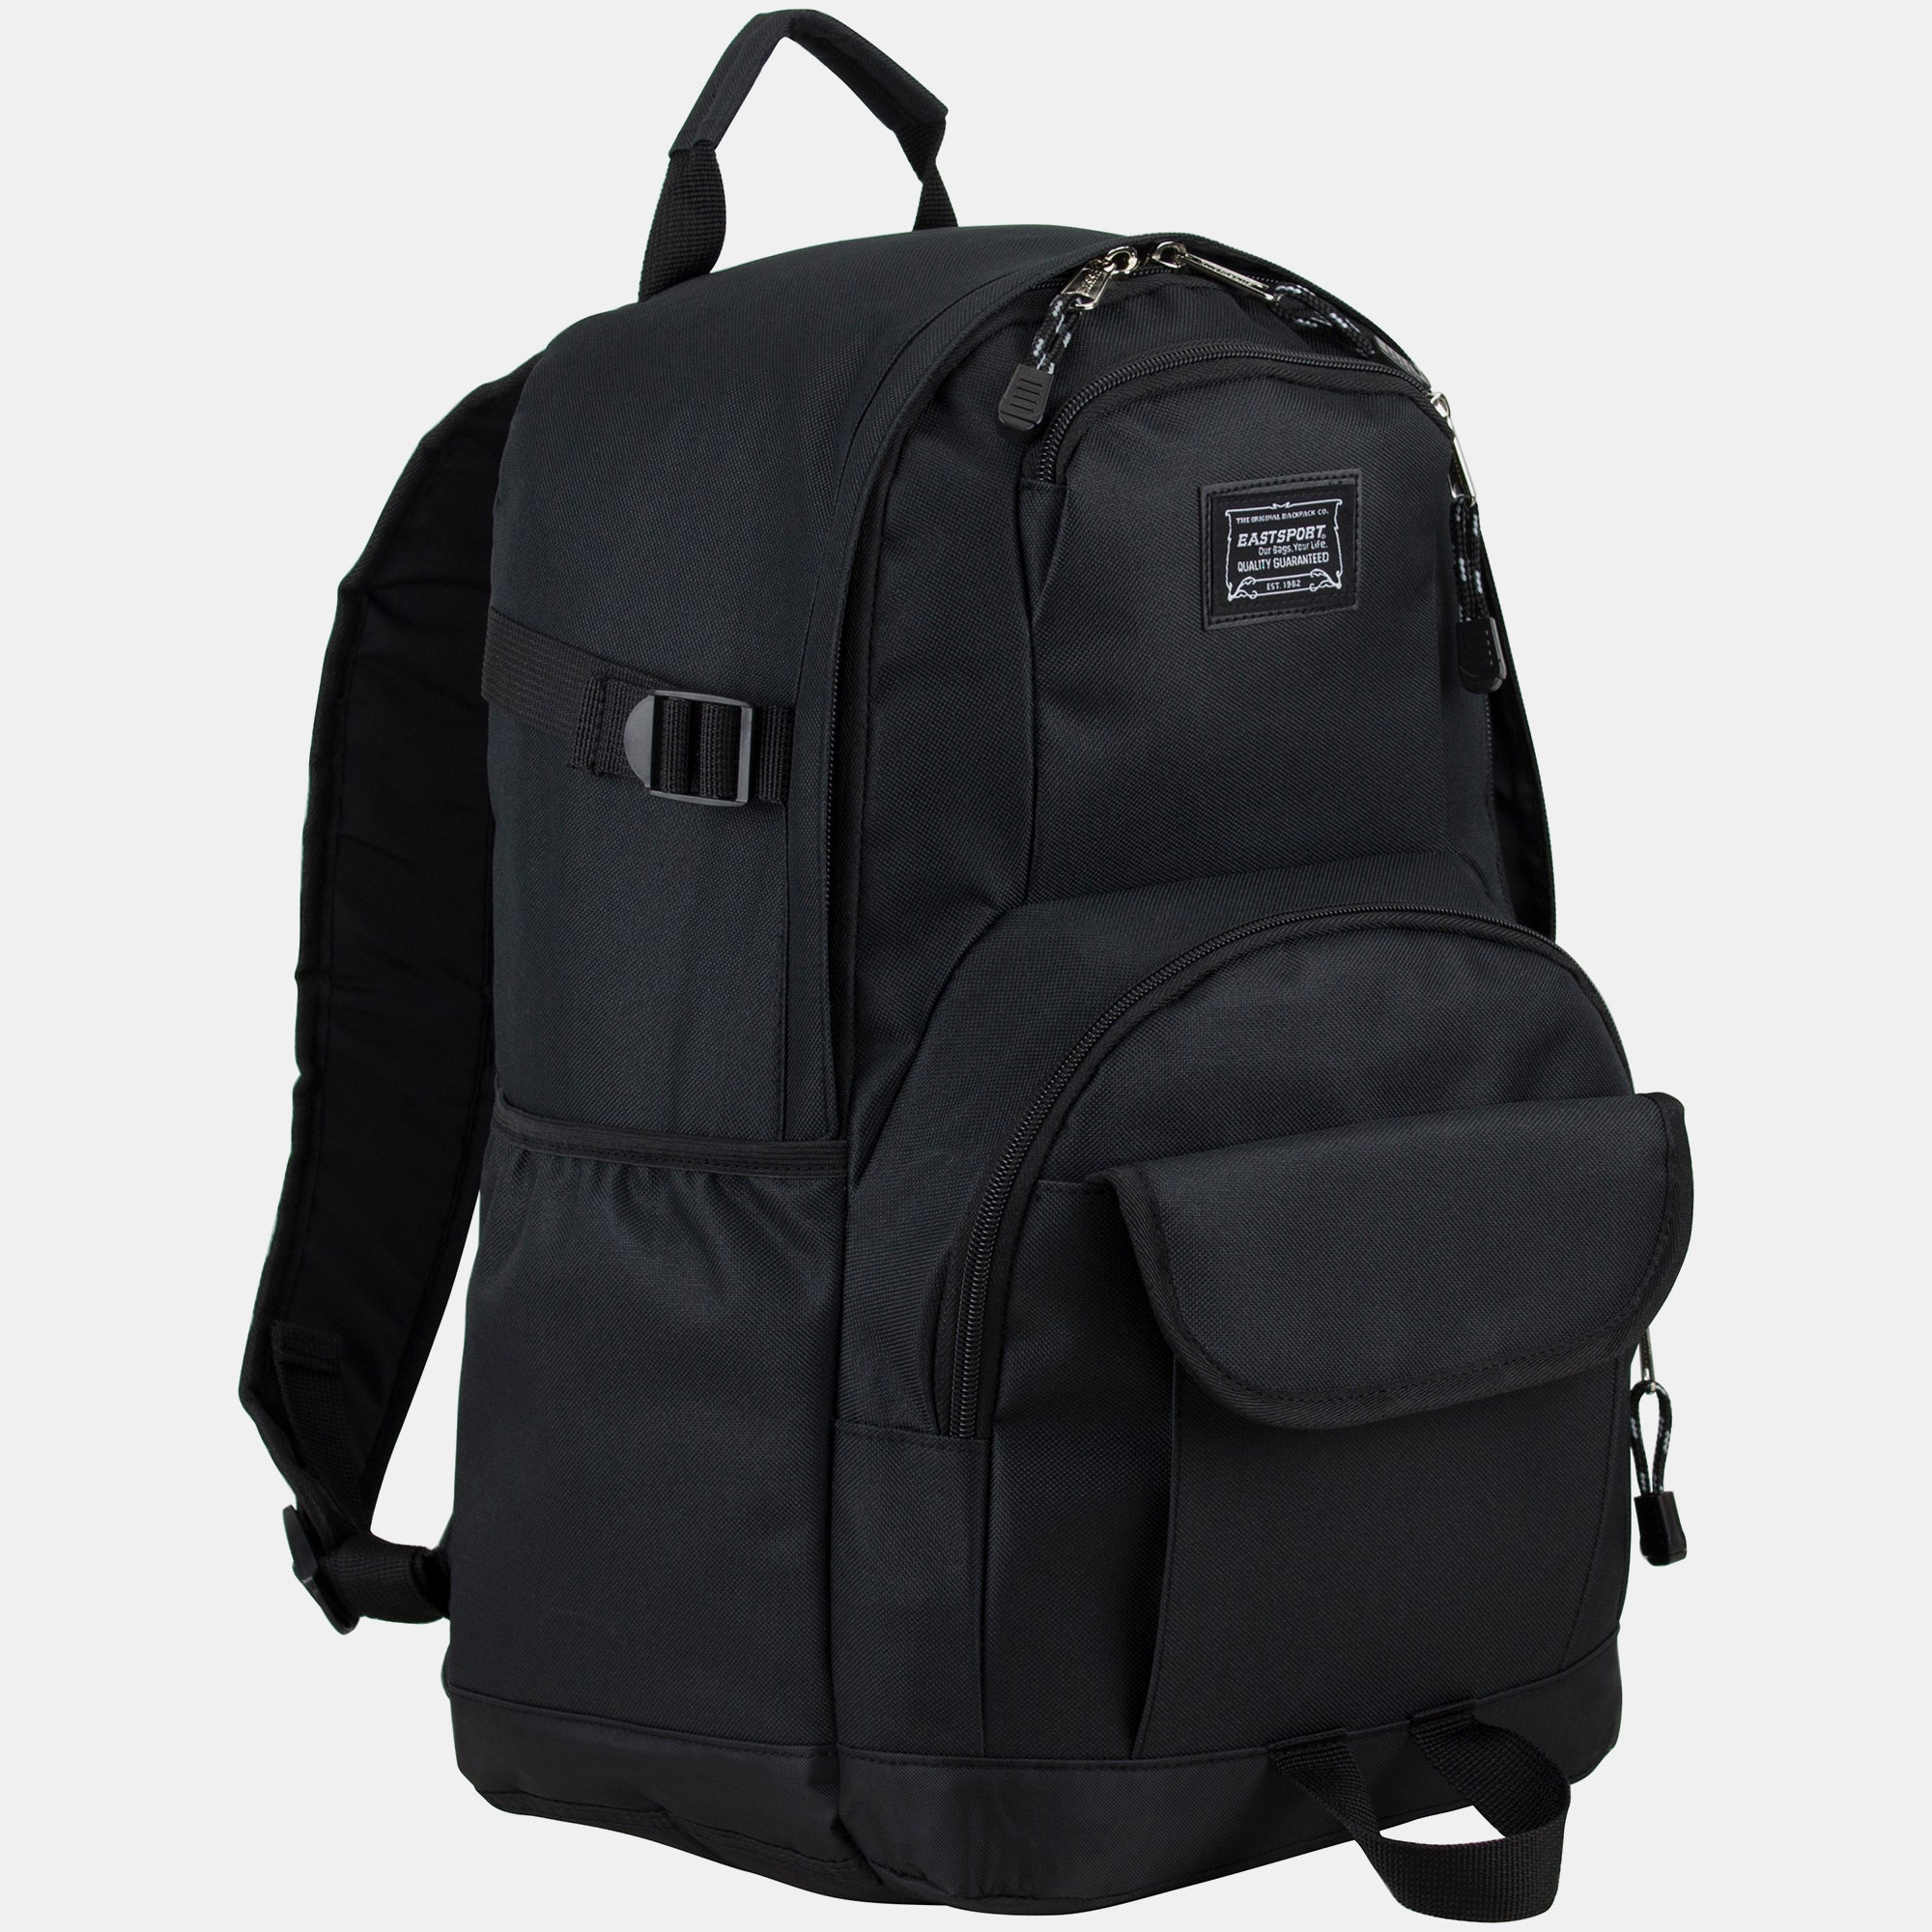 Eastsport Multi-Purpose Millennial Tech Backpack